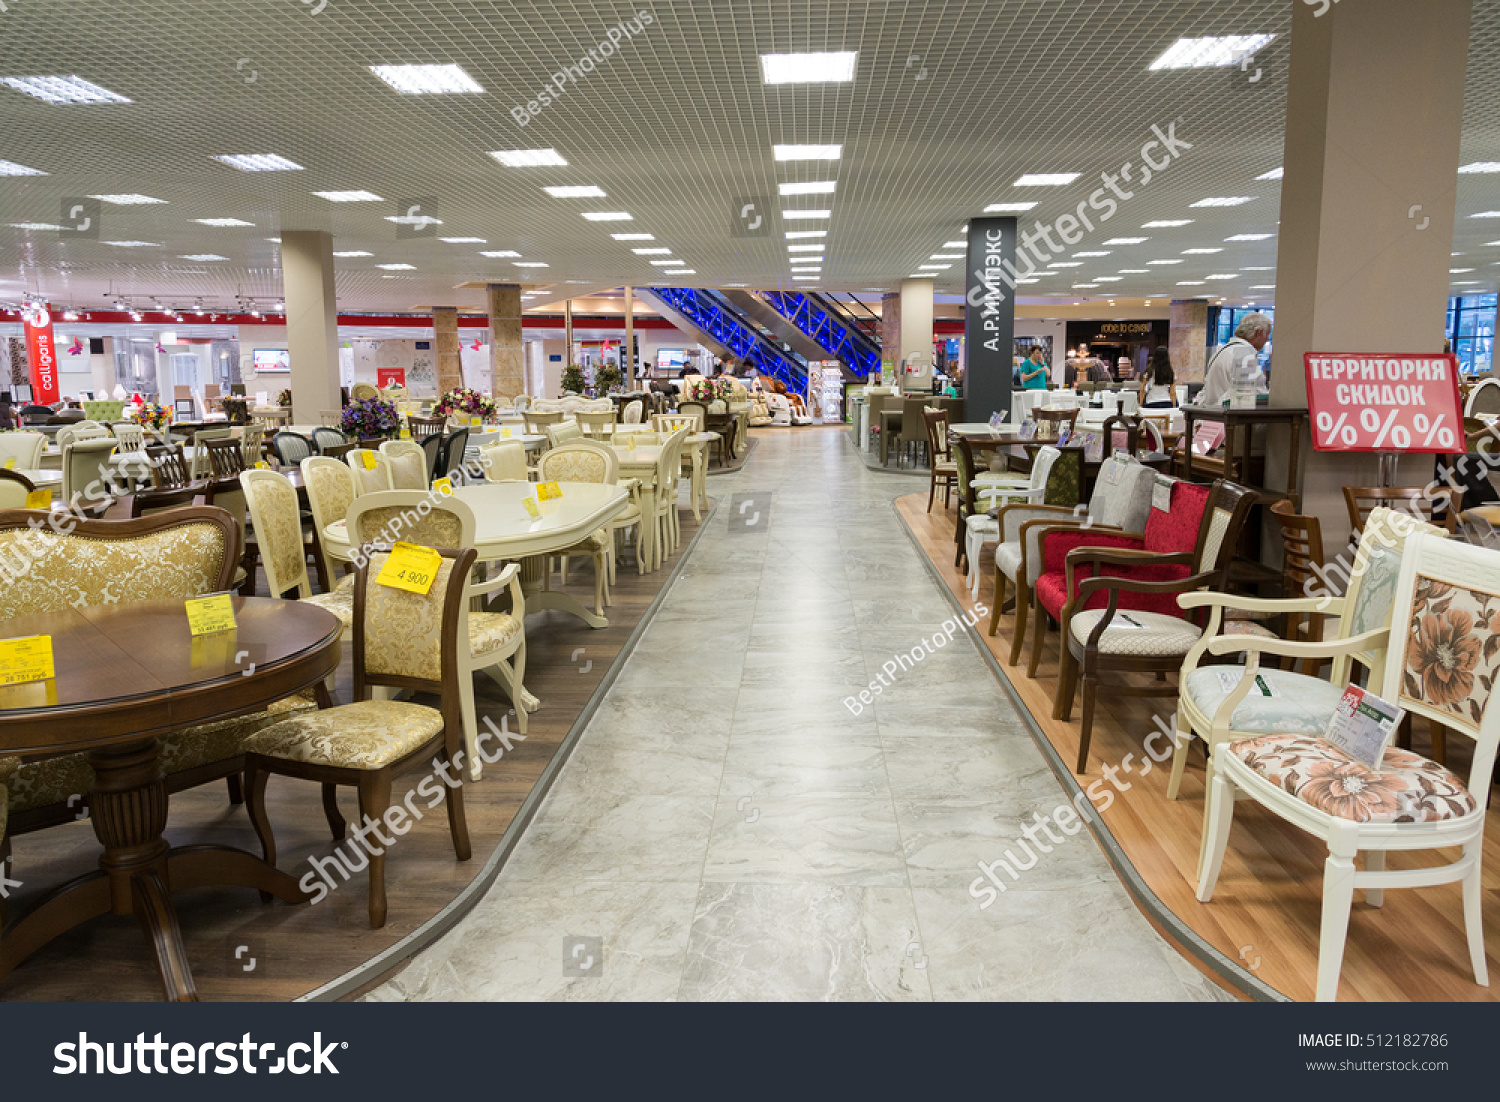 khimki russia september tables and chairs in the largest furniture store grand stock